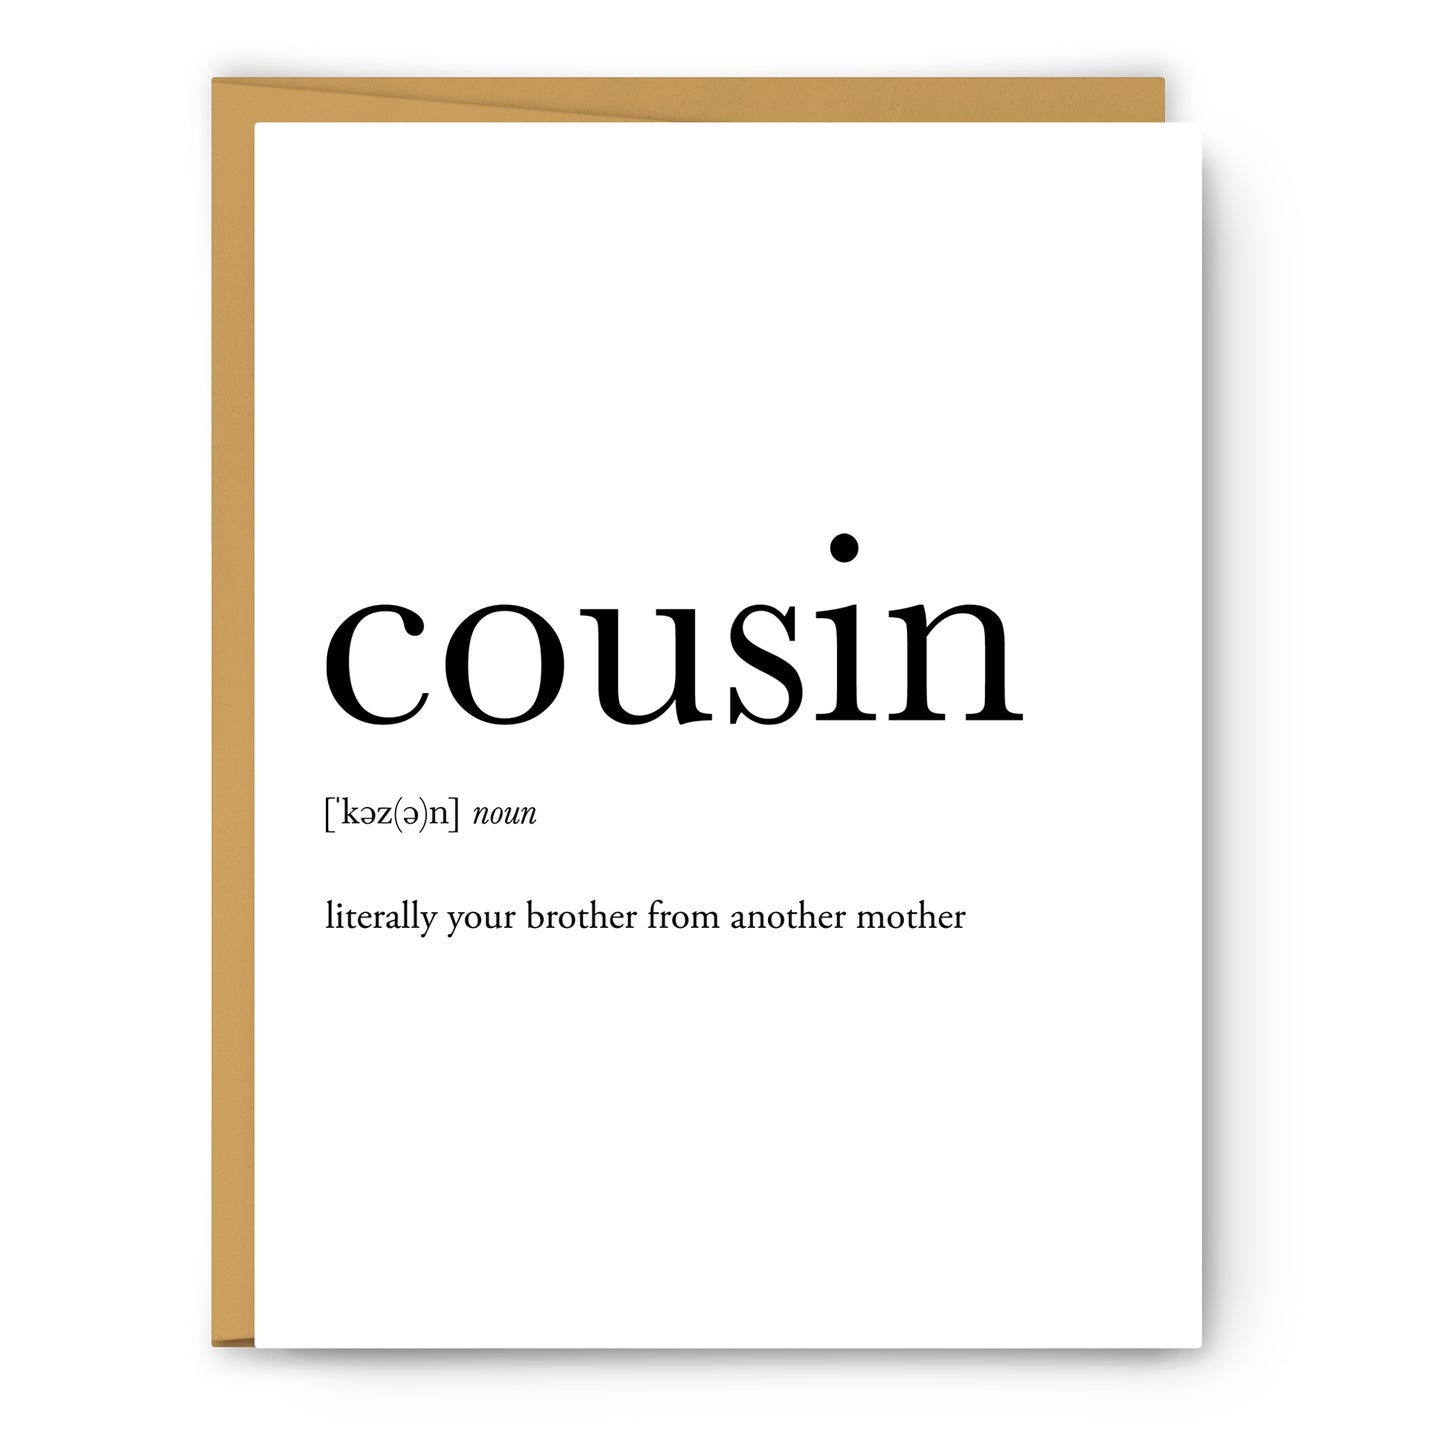 Cousin (Male) Definition - Unframed Art Print Or Greeting Card